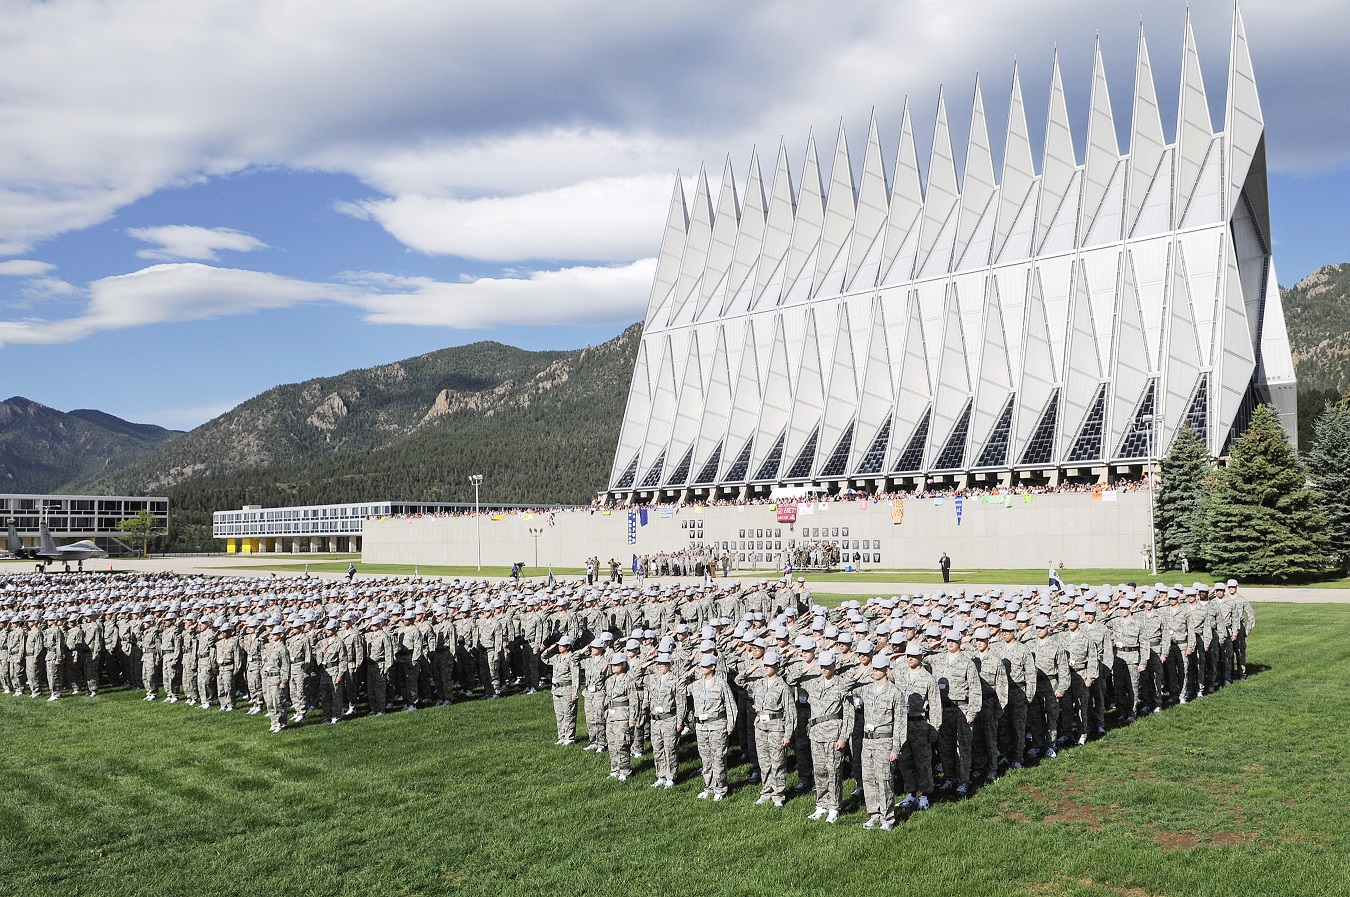 Air Force Academy cadet wrote racial slur outside his own dorm room